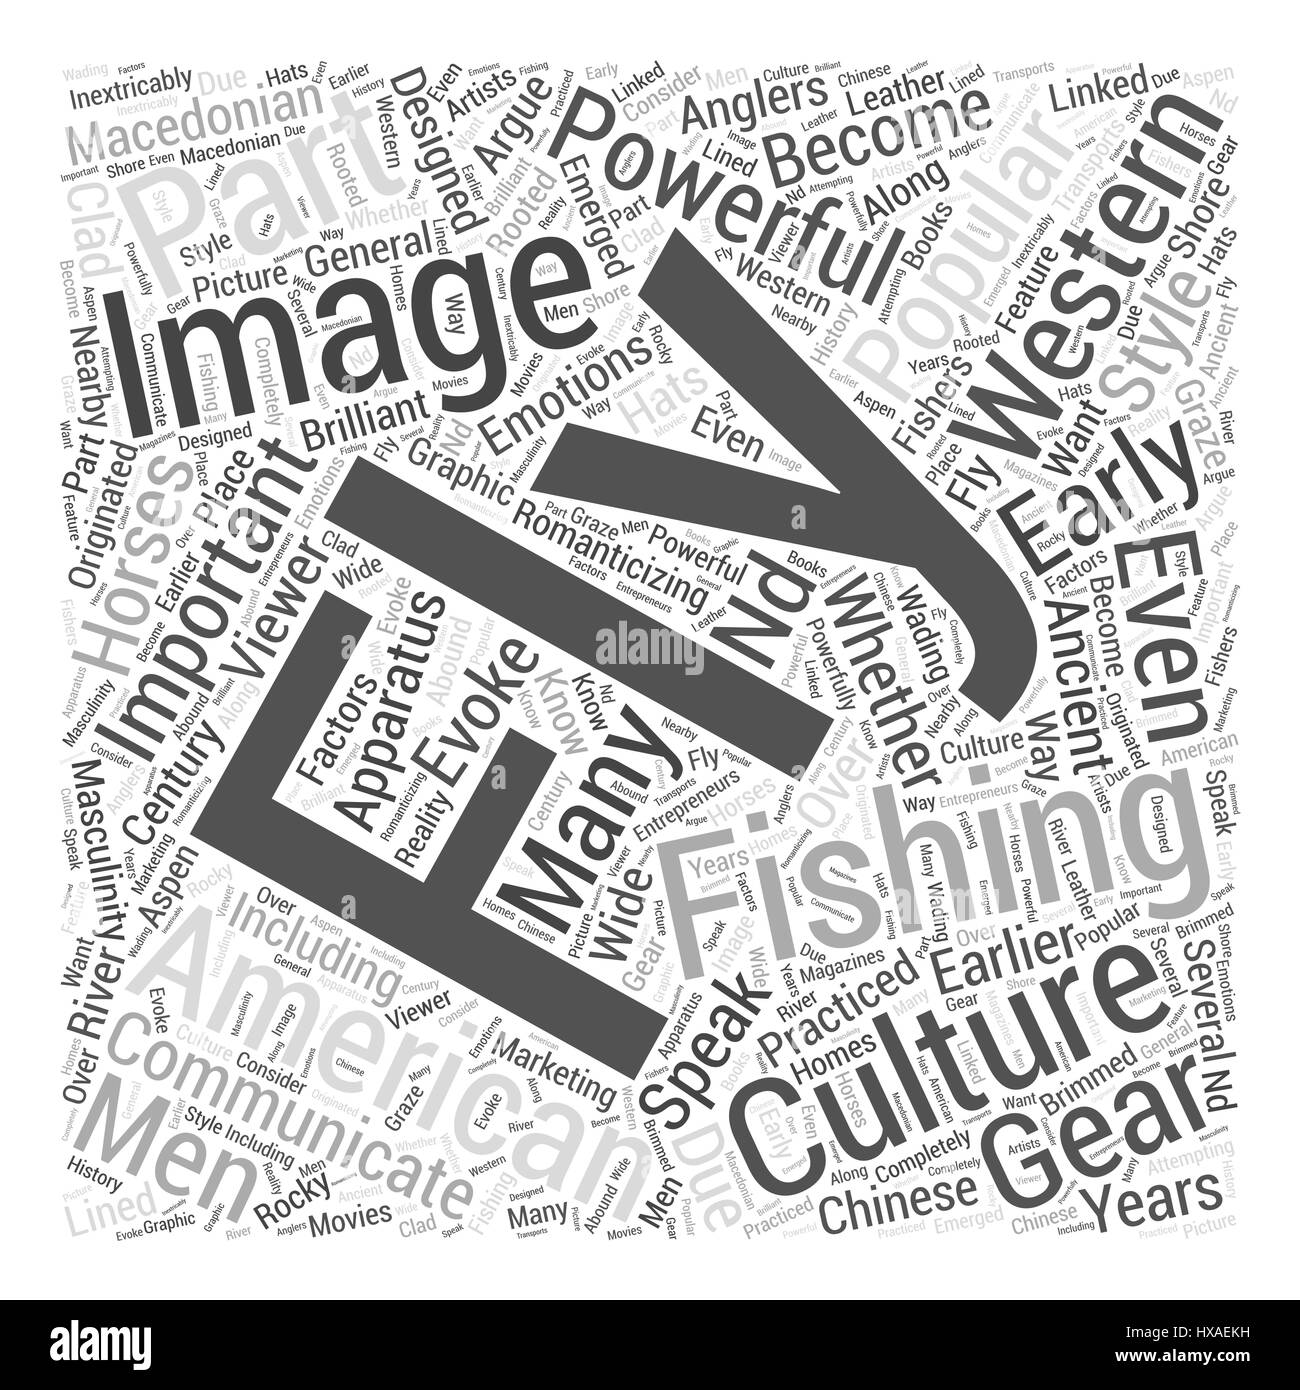 Fly Fishing In Popular Culture Word Cloud Concept Stock